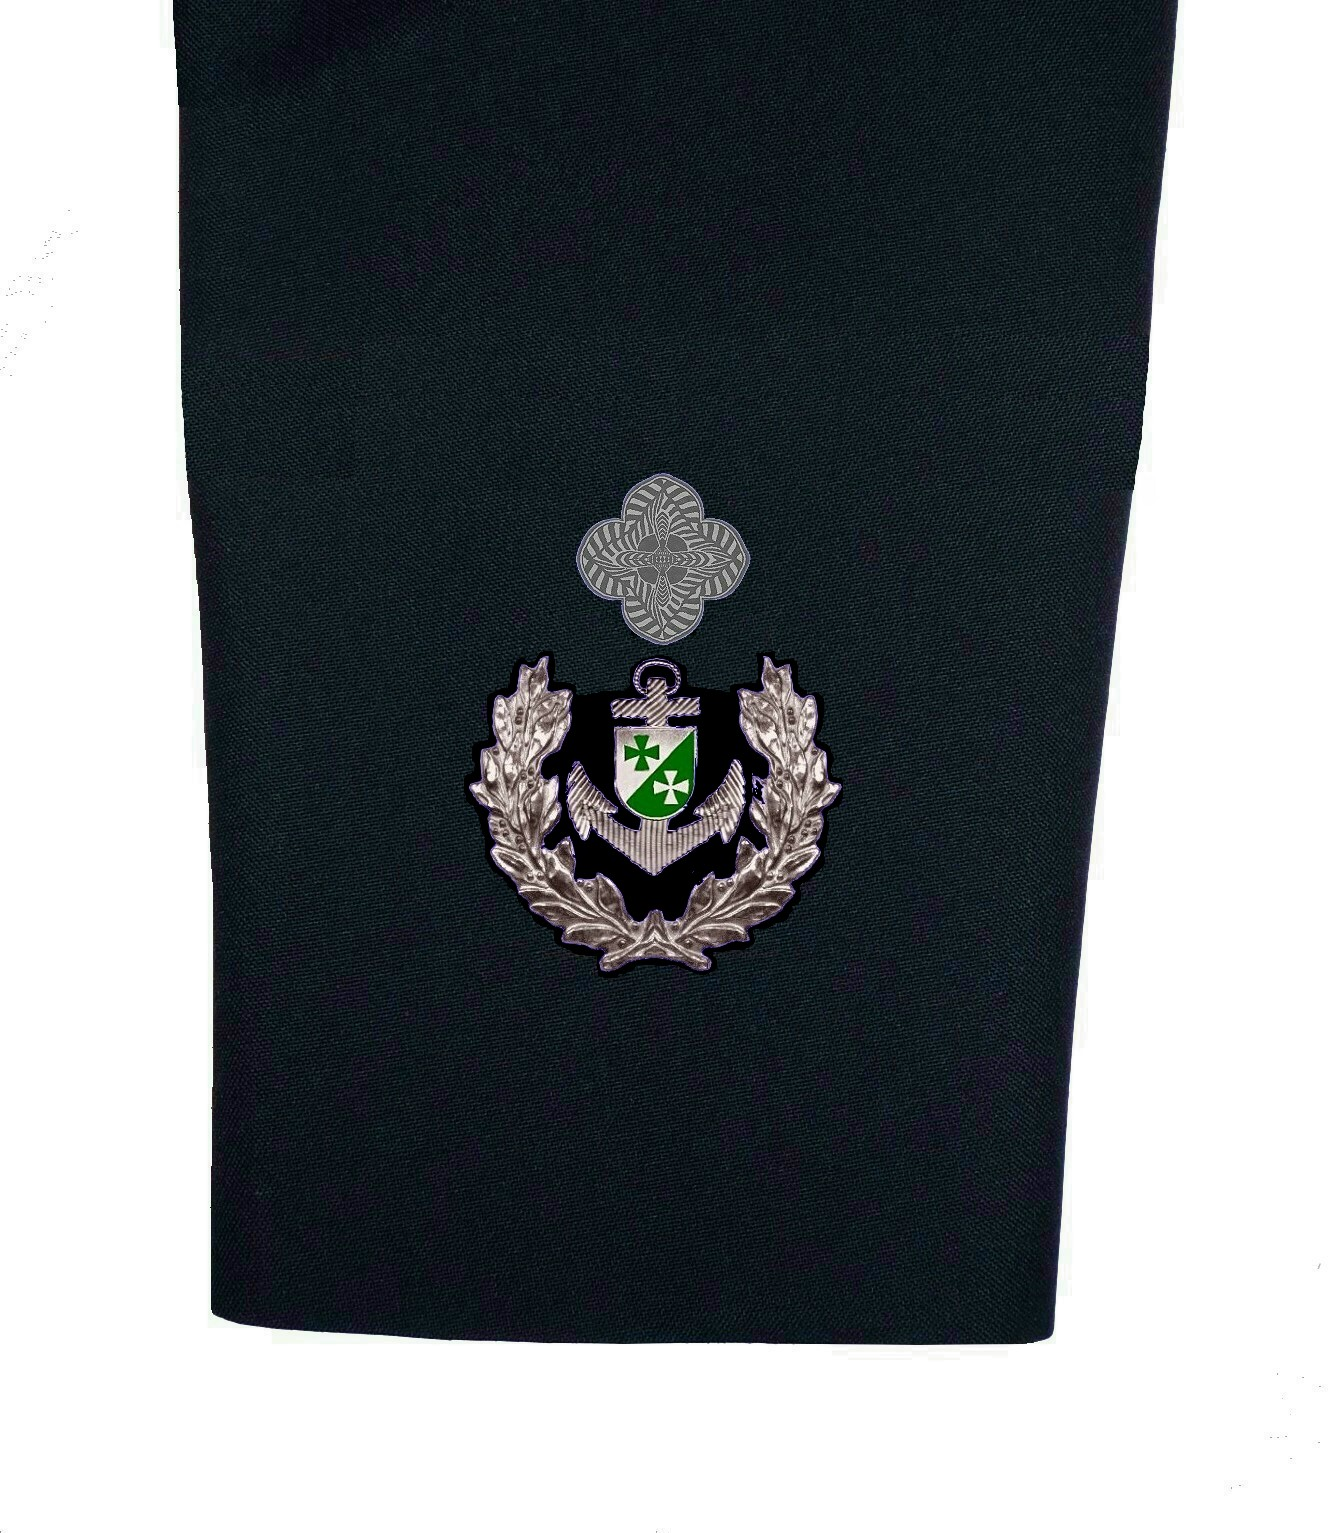 08-aermel-command-petty-officer